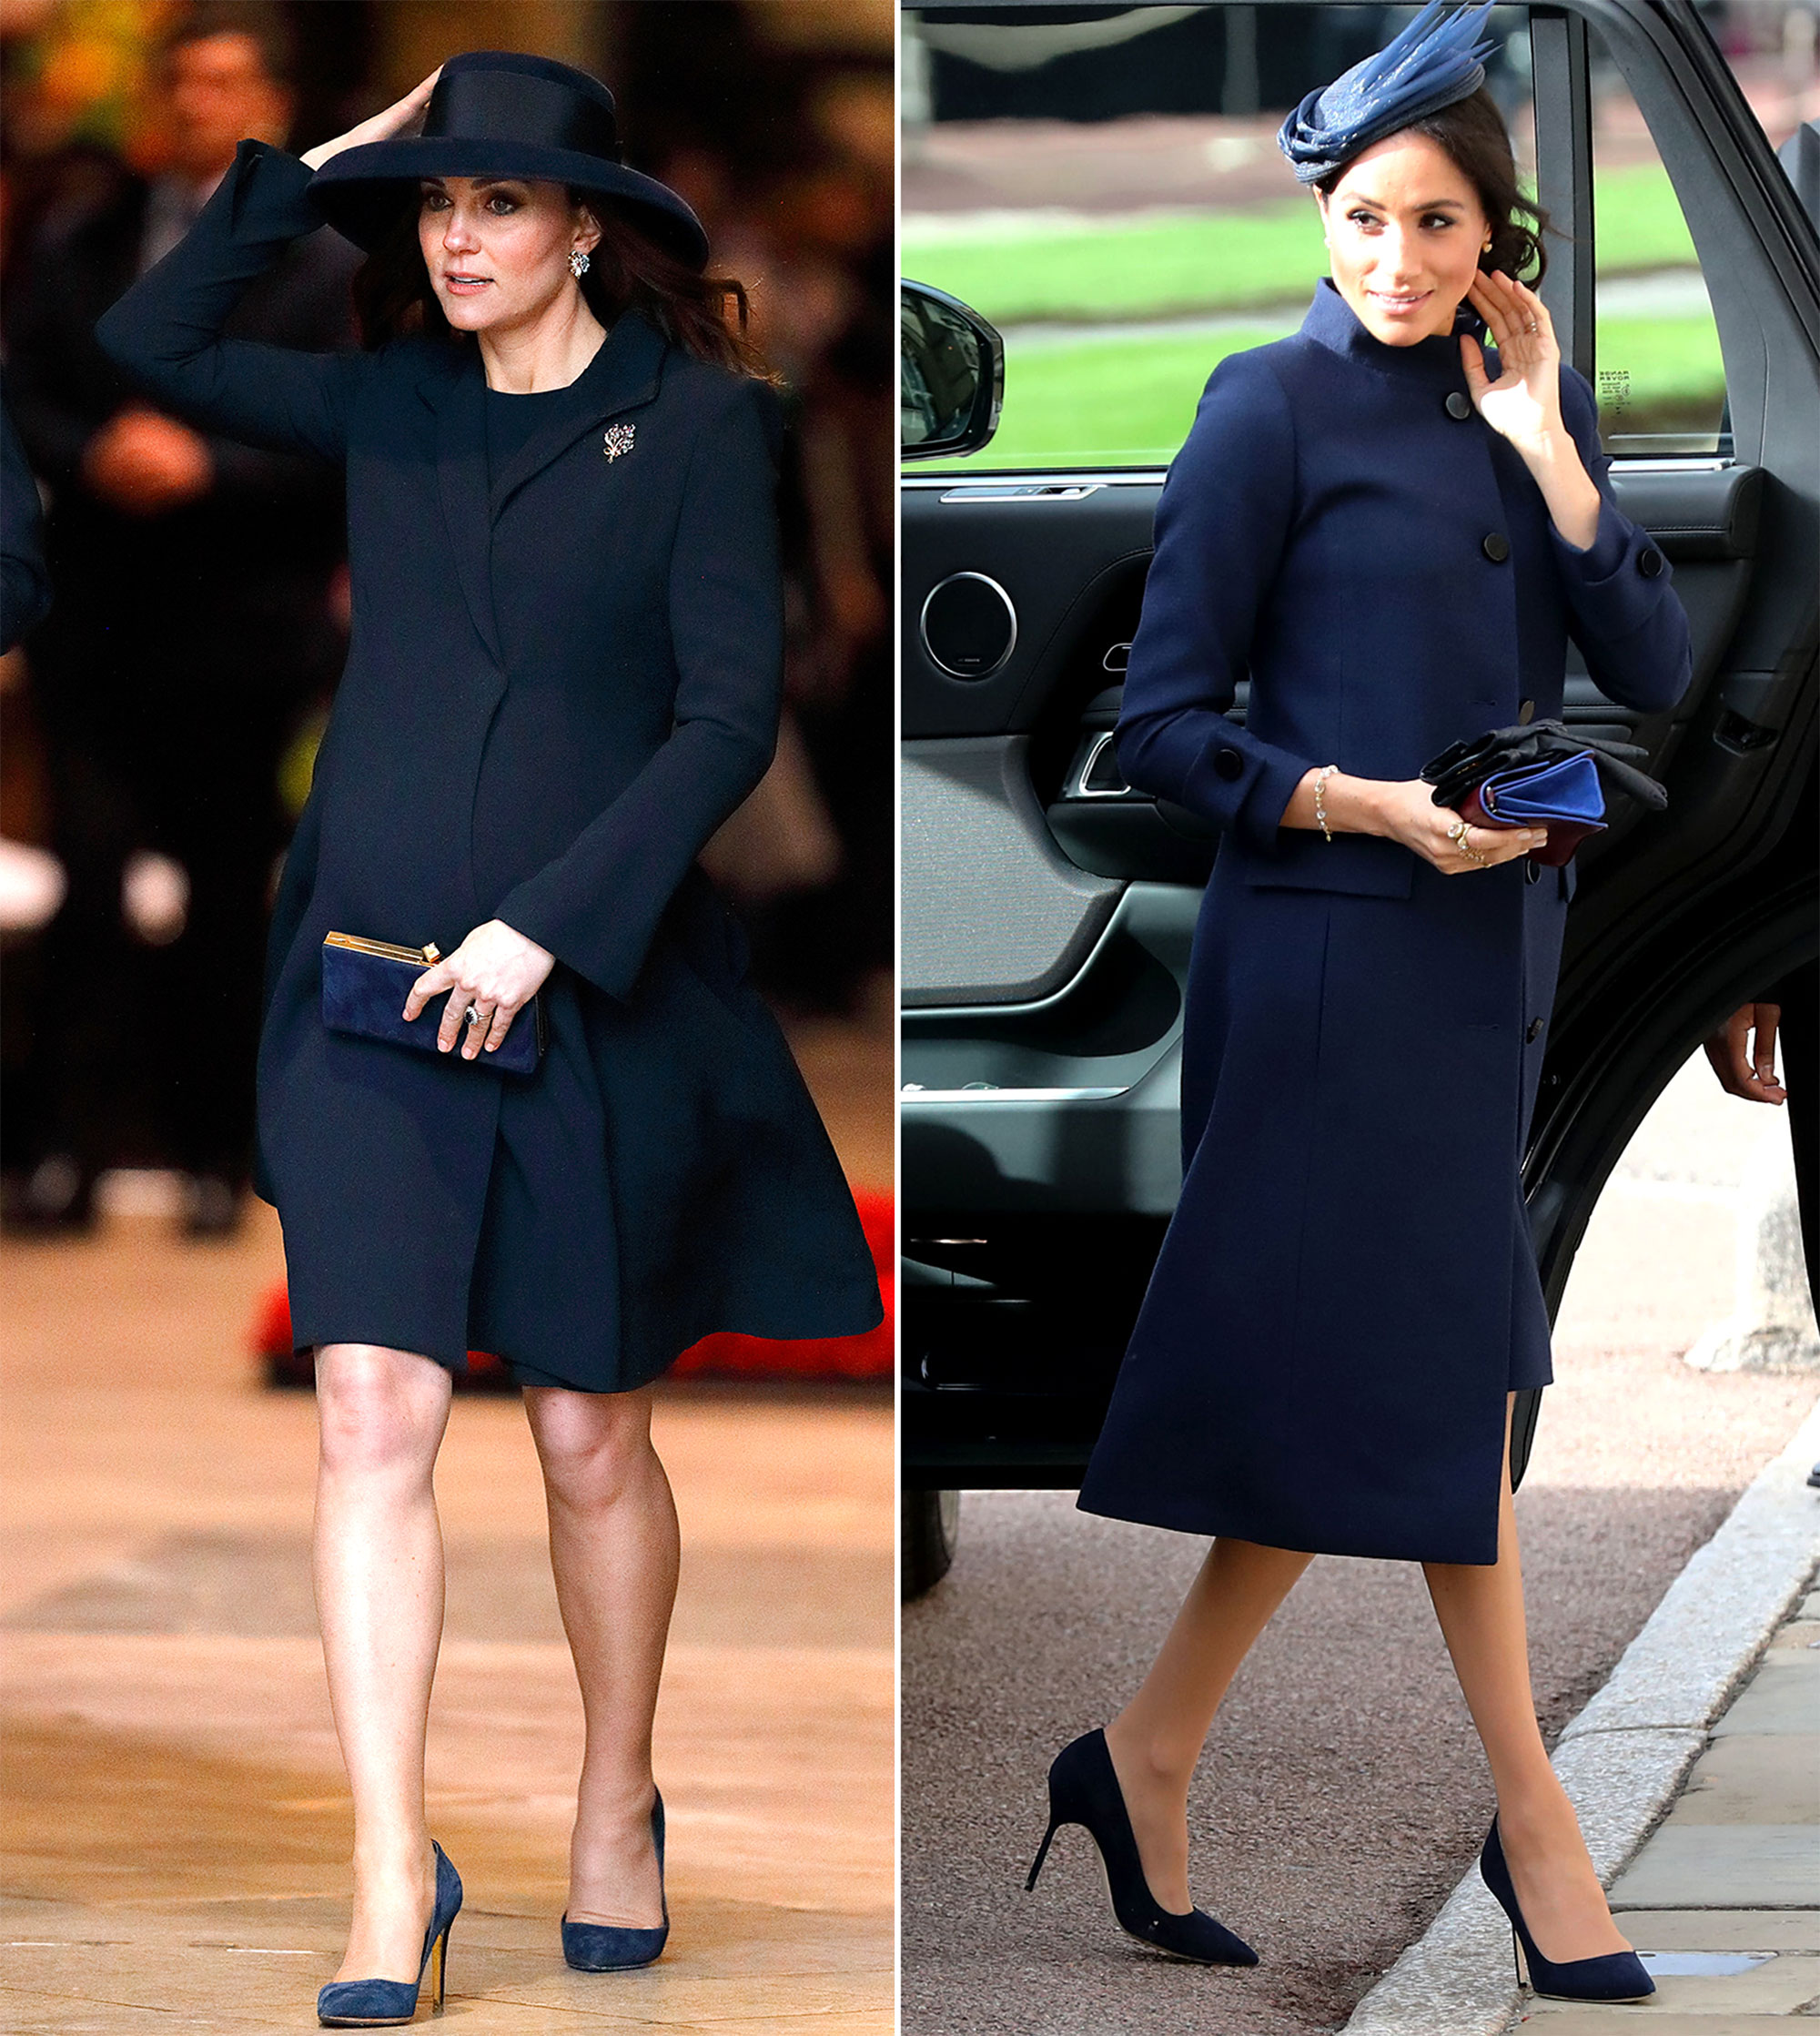 The Royal Style Secret Meghan Markle Stole From Kate Middleton - We don't know what it is about maternity wear, the color navy and members of the Royal Family, but the sisters-in-law have both sported monochrome midnight looks while pregnant. Kate attended the 2018 Commonwealth Day while pregnant with Prince Louis in a Buelah London dress and coat, navy suede pumps and a bow-adorned Lock and Co. hat.